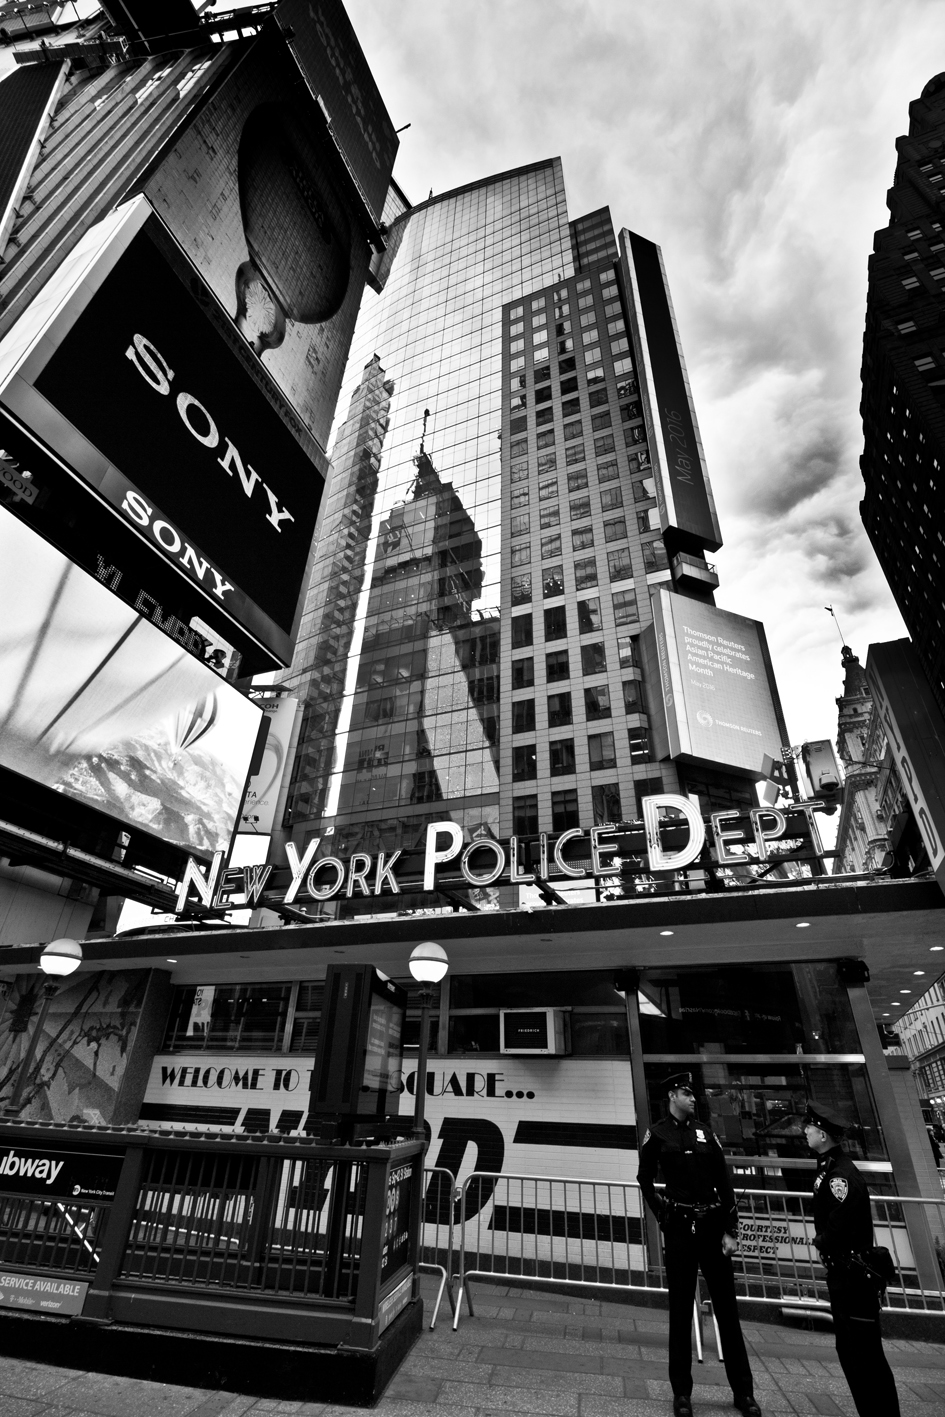 NYPD Time Square, New York